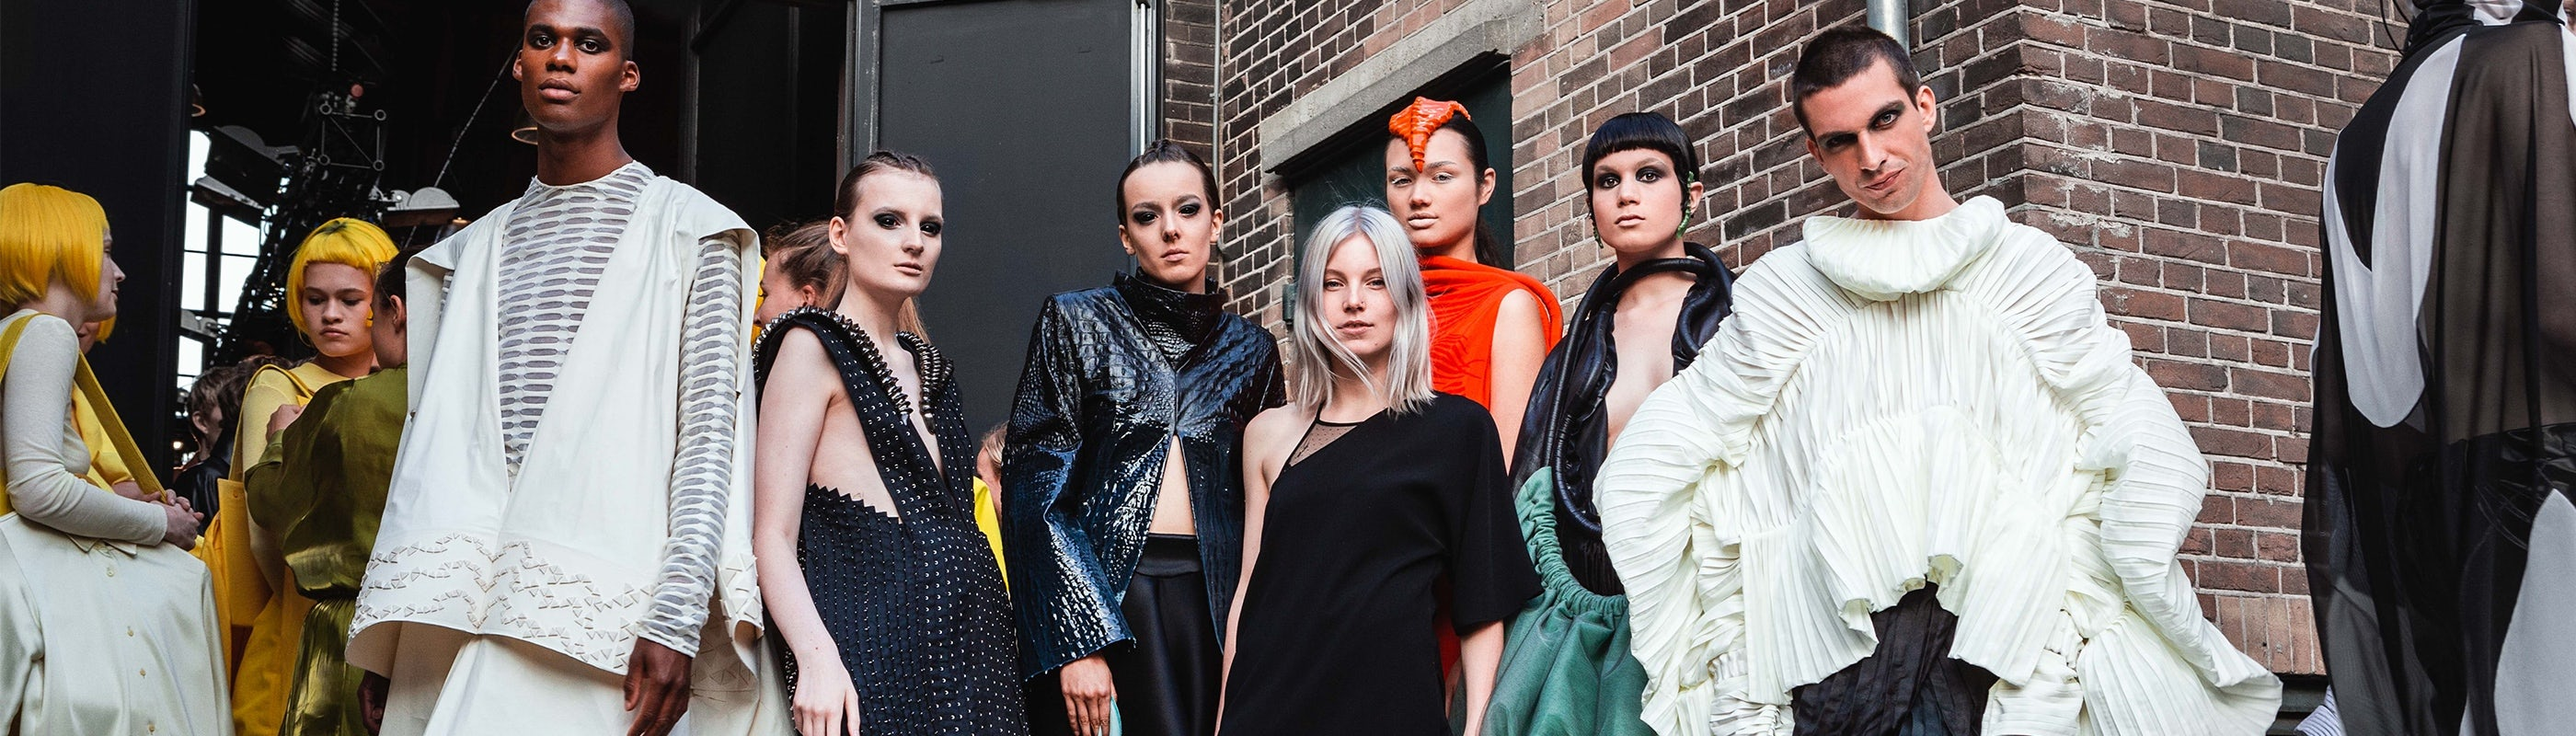 Amsterdam Fashion Institute's Page | BoF Careers | The